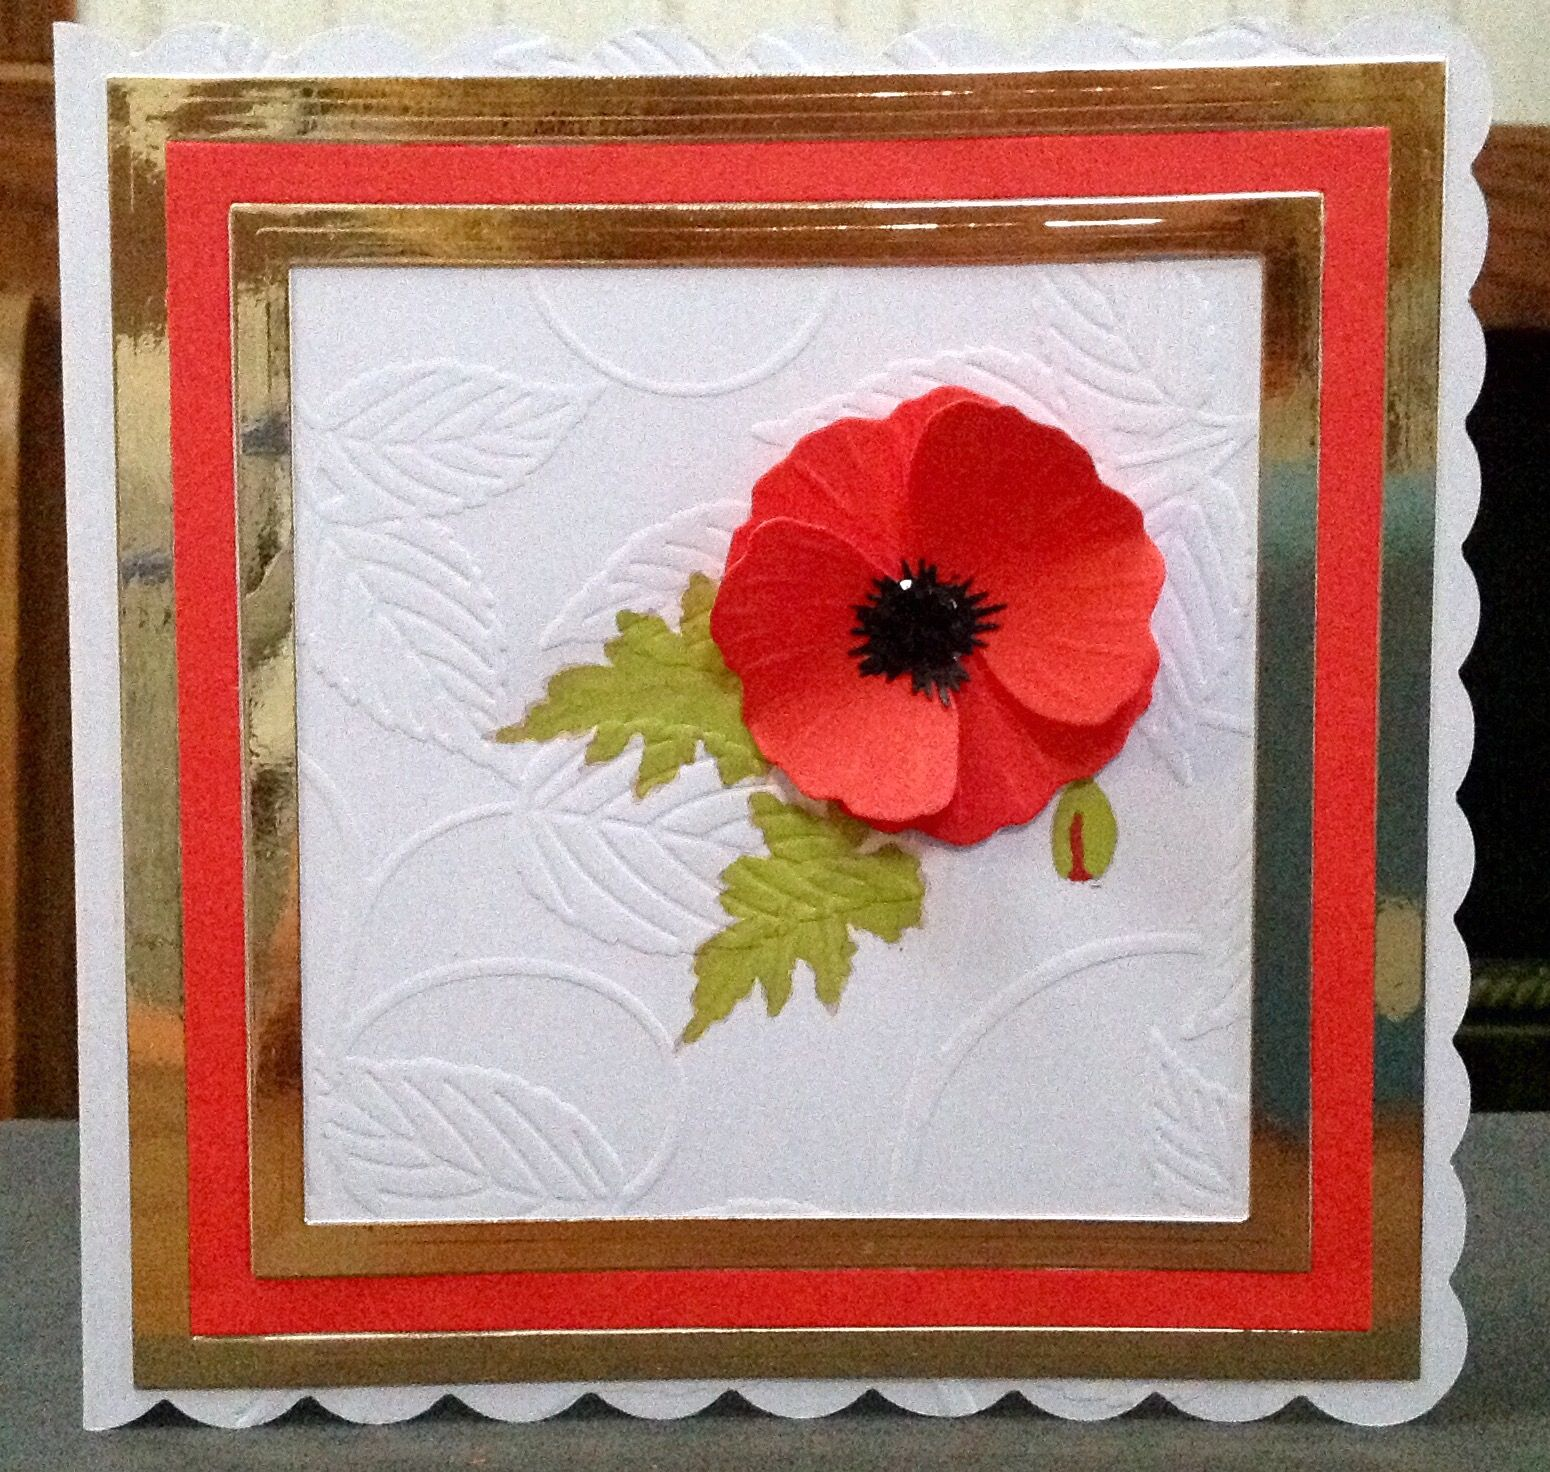 A poppy card for remembrance,the stamp was from Sheena stamps, with an embossed back ground .